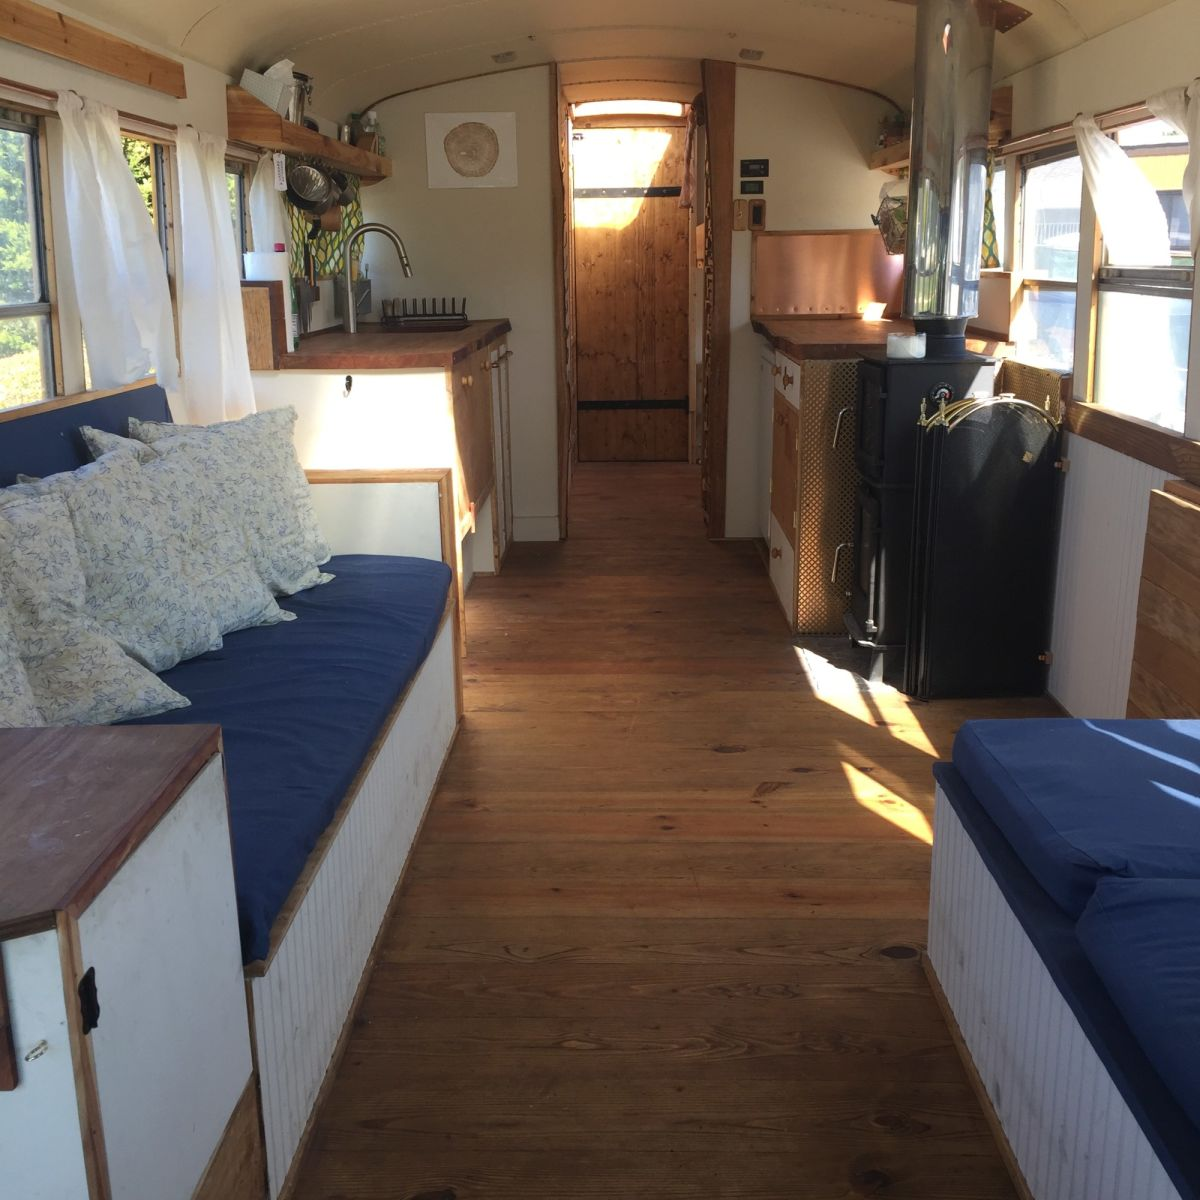 Bus Conversion Skoolie For Sale Converted Bus For Sale